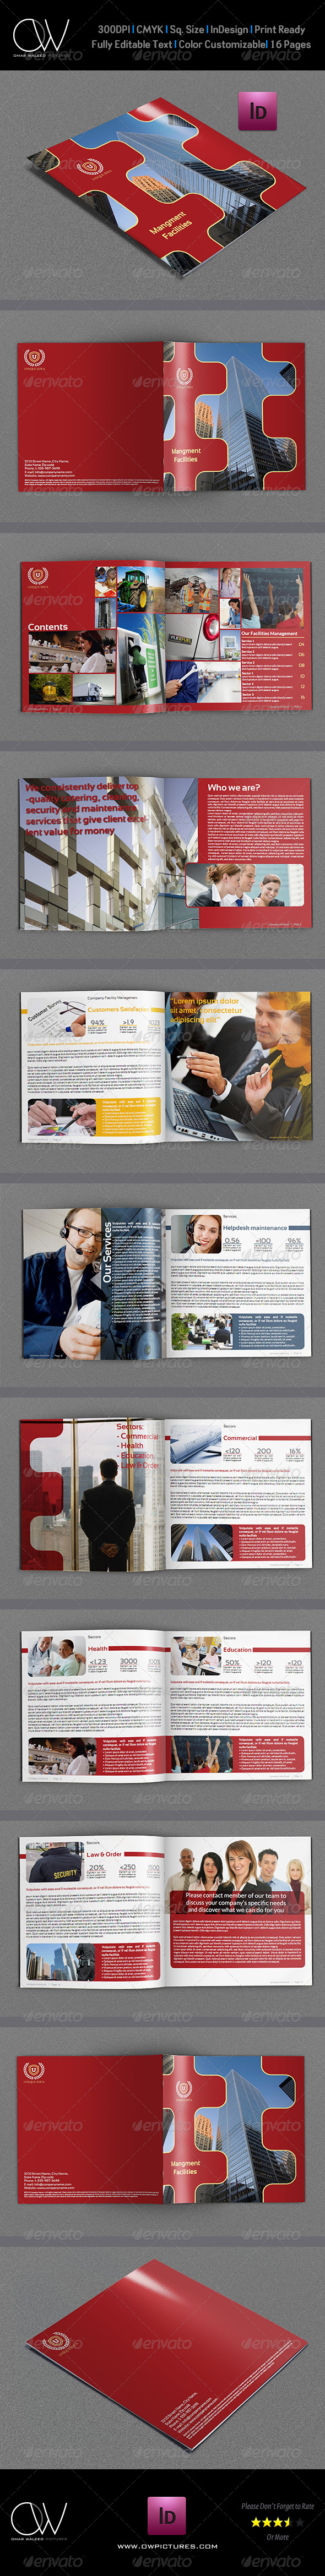 Corporate Brochure Template Vol.11 - 16 Pages - Corporate Brochures